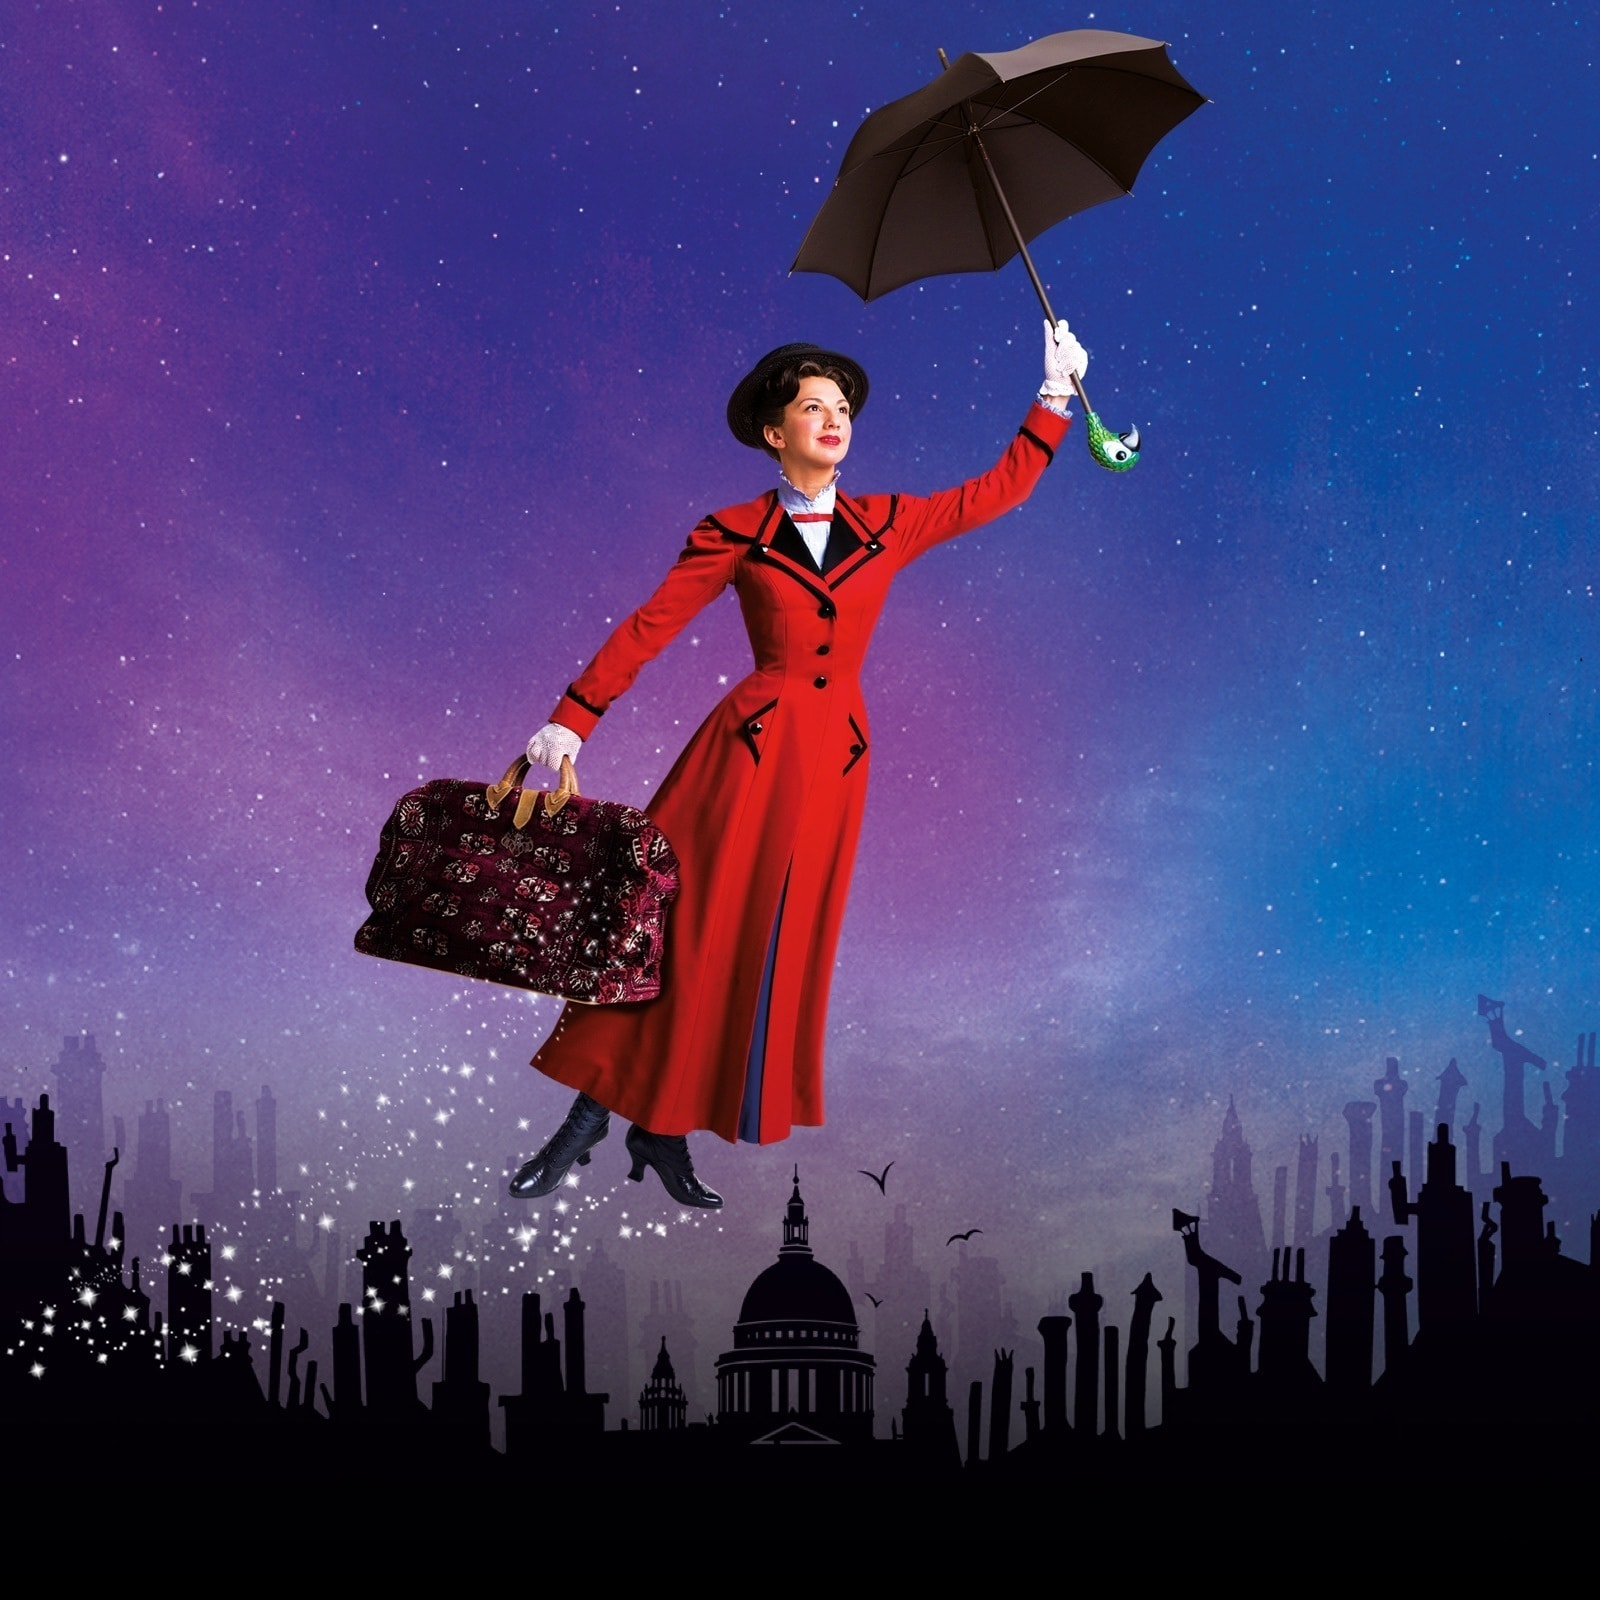 Mary Poppins flying over a town made up of silhouettes